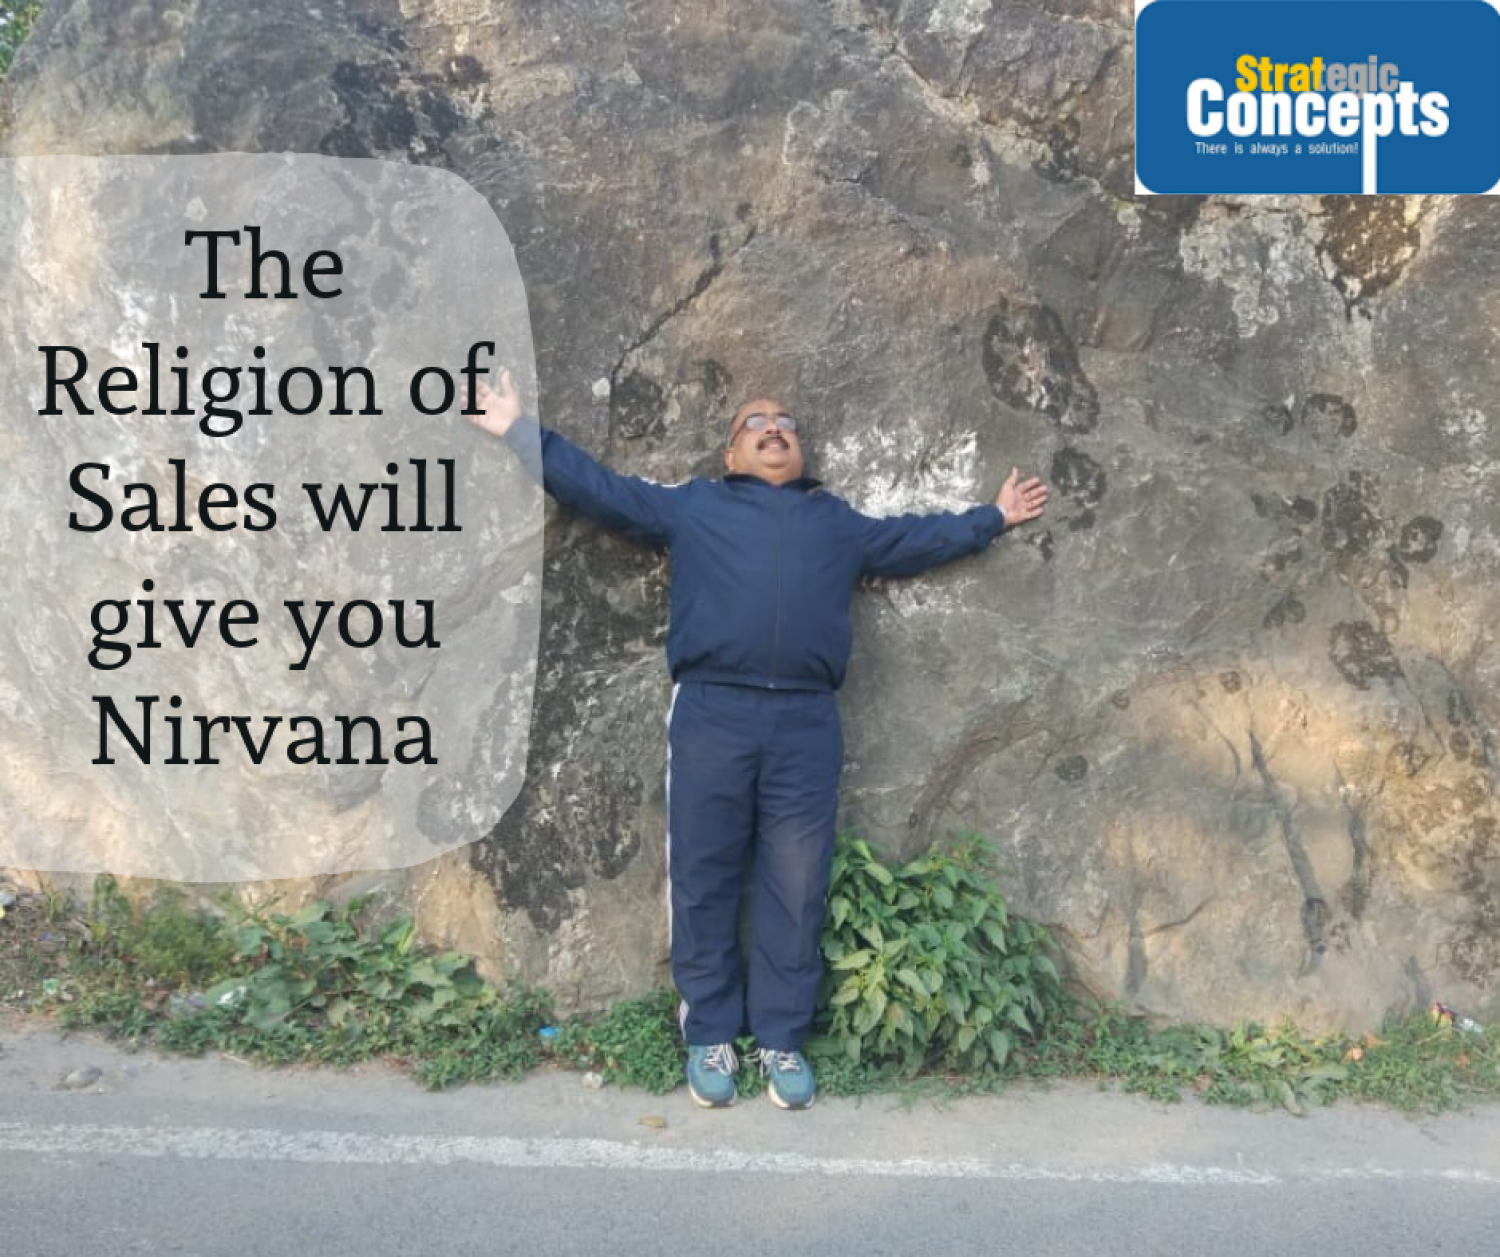 The Religion of Sales will give you Nirvana Infographic